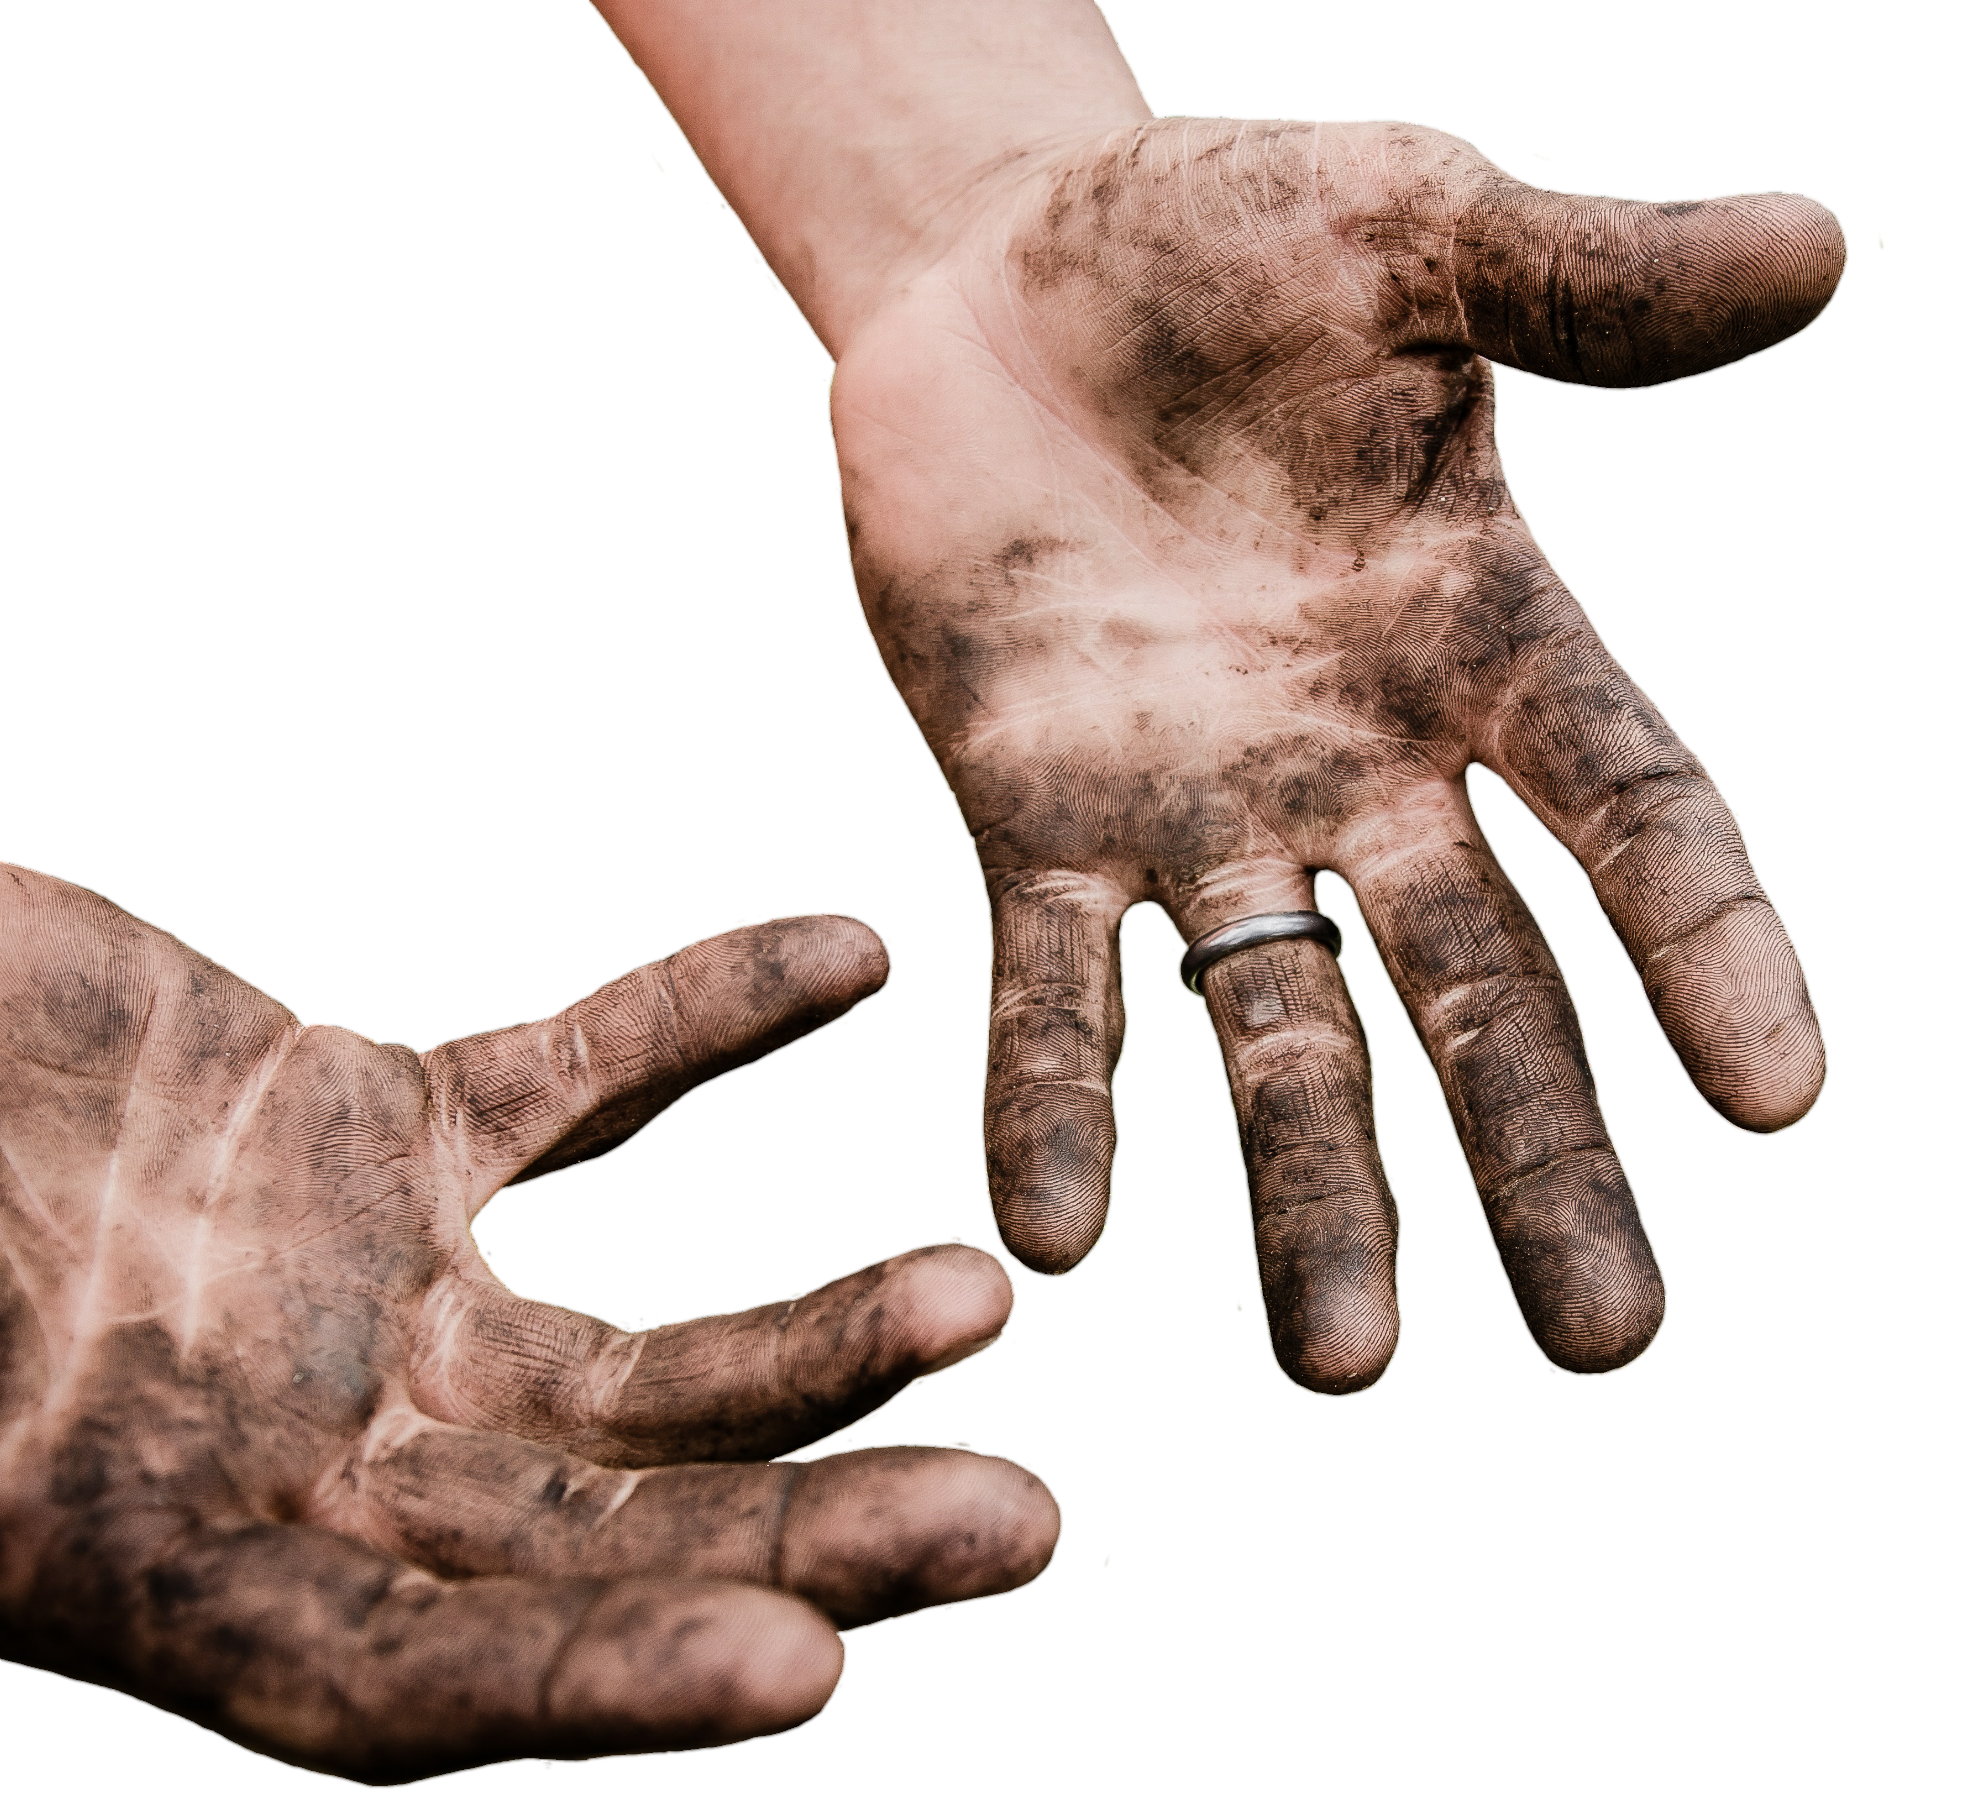 Download Dirty Hands Png Image For Free Download 579 hand png images with transparent background. download dirty hands png image for free